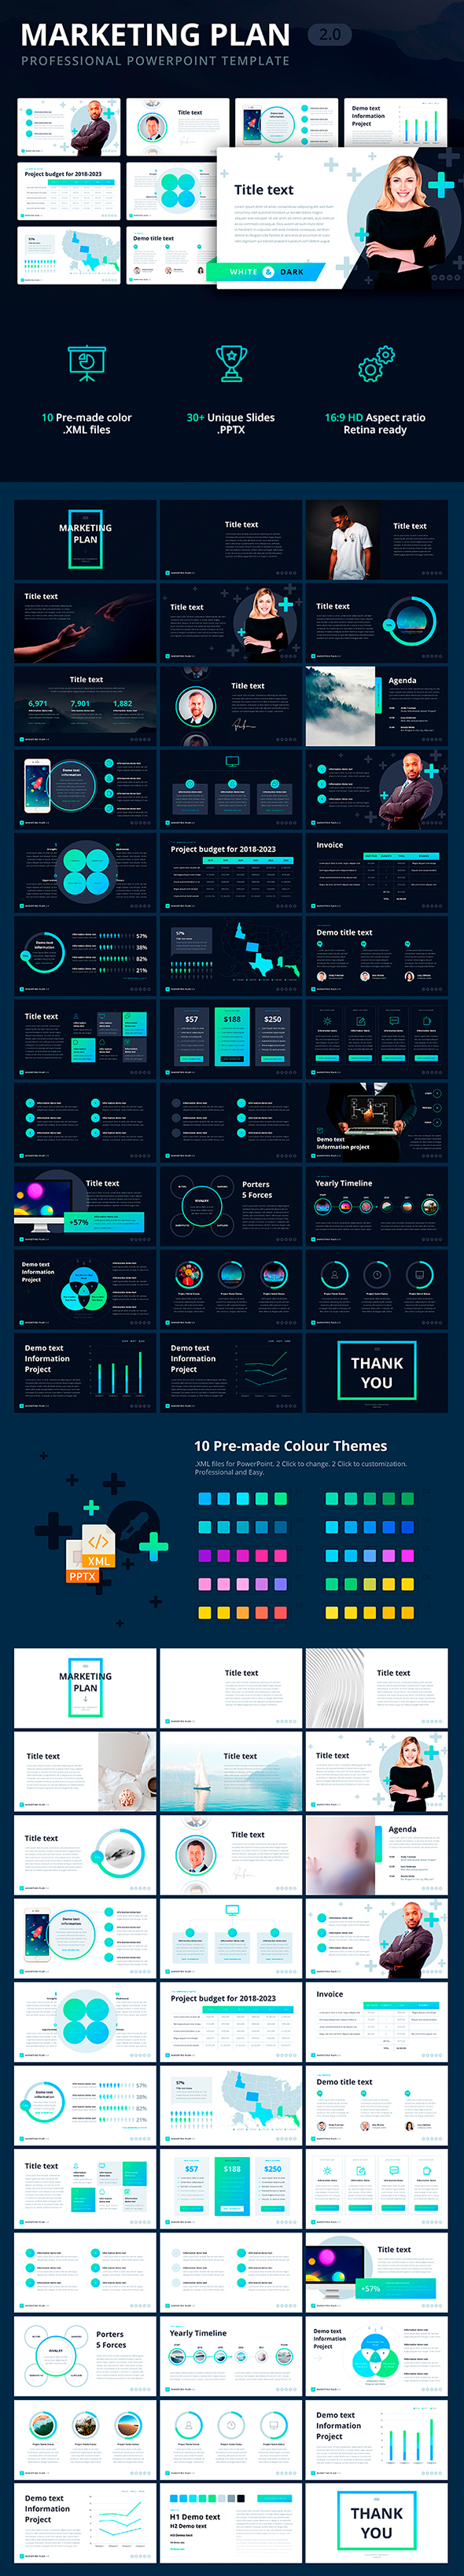 Marketing Plan 2.0 Template for PowerPoint - PowerPoint Templates Presentation Templates